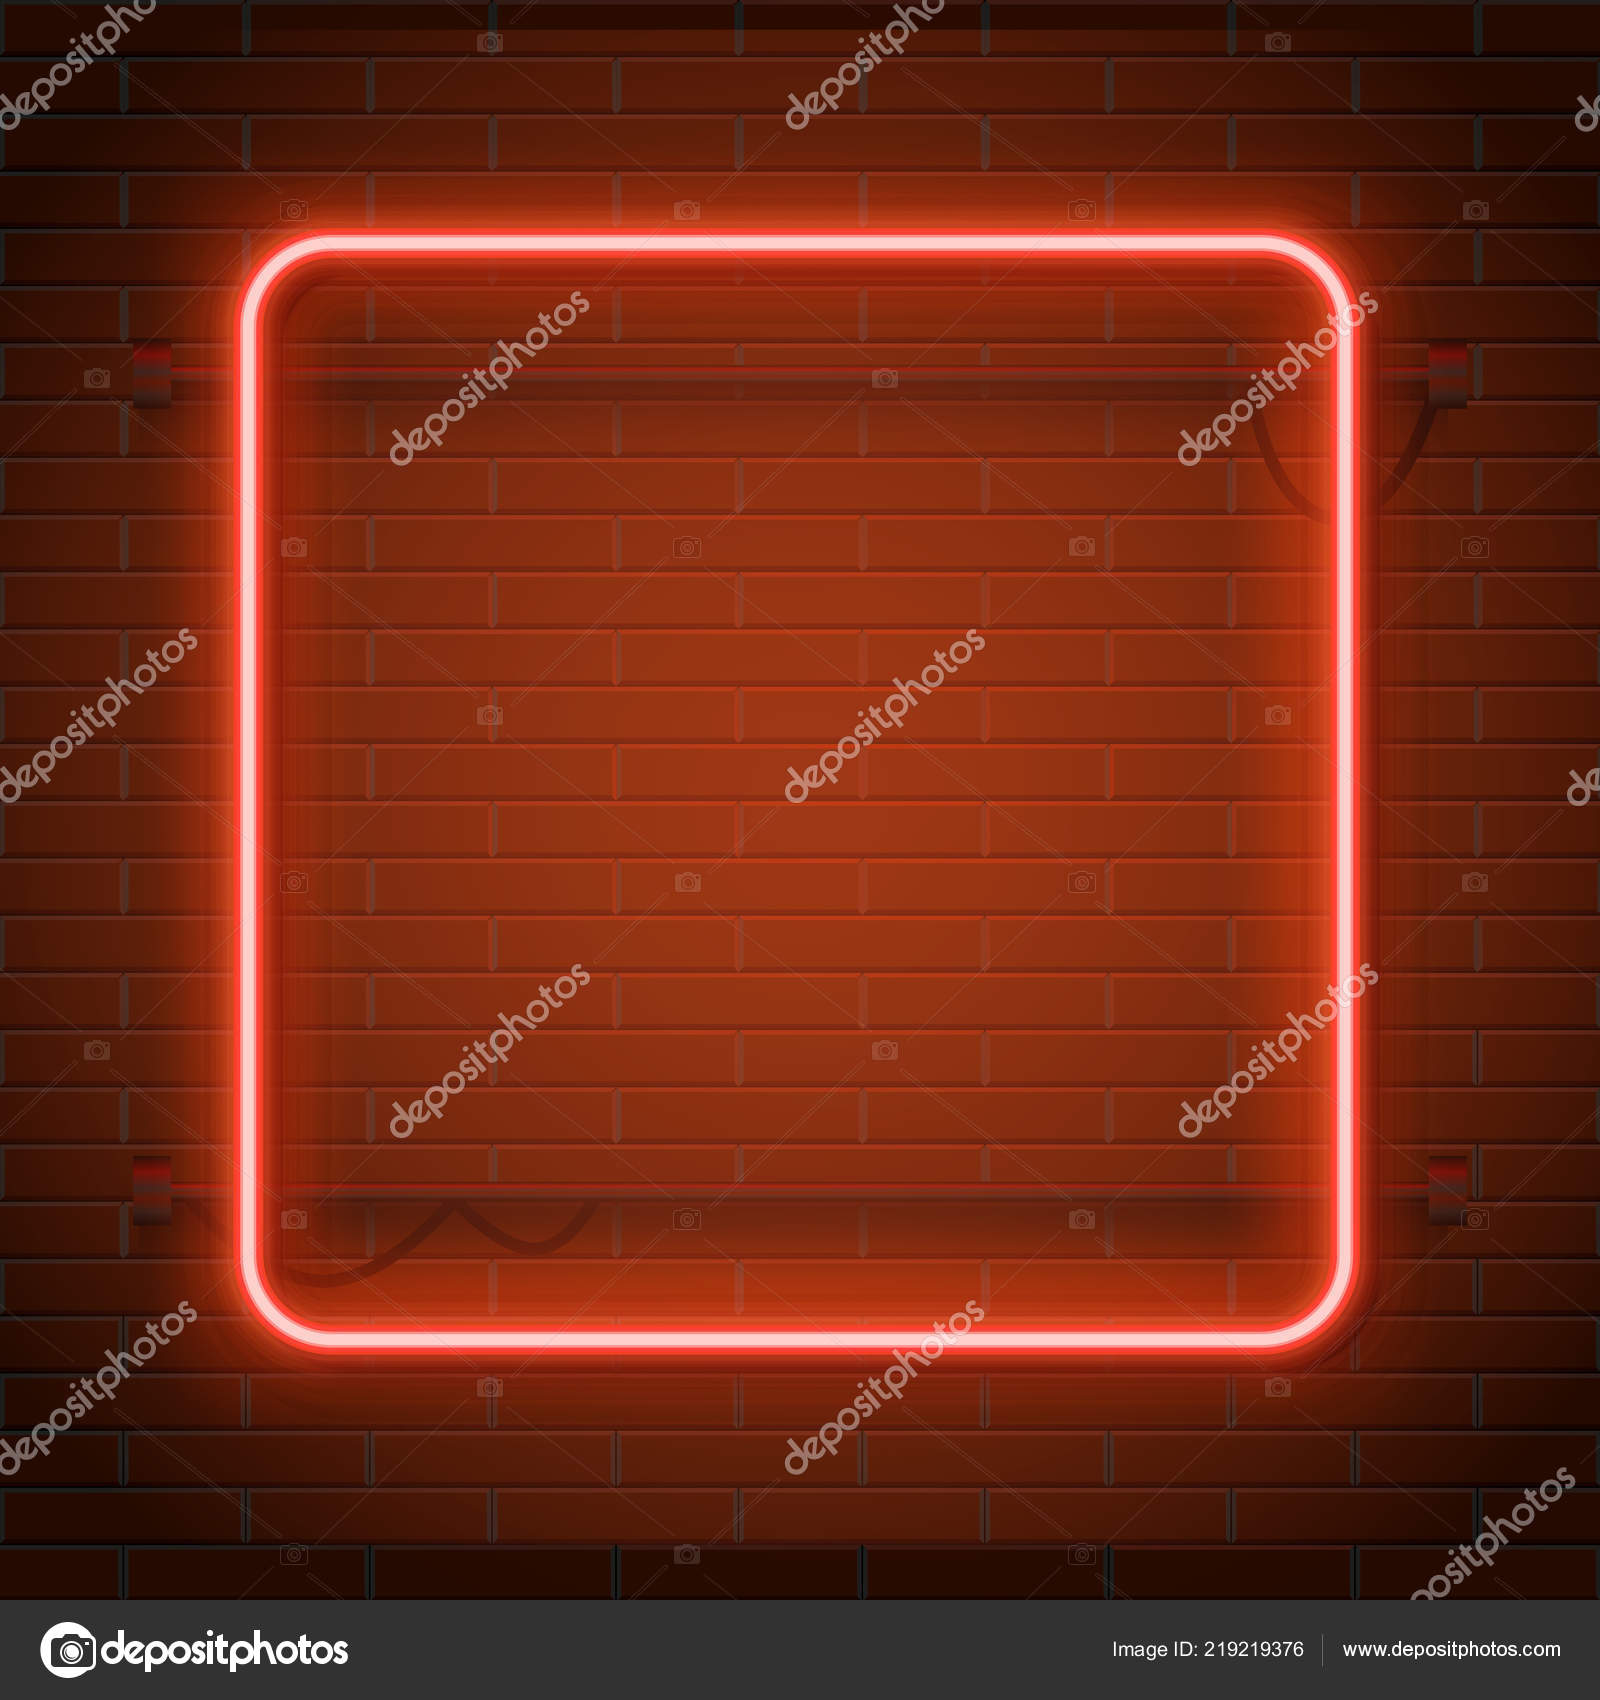 Neon Lamp Neon Lamp Casino Rectangel Frame On Brick Wall Background Las